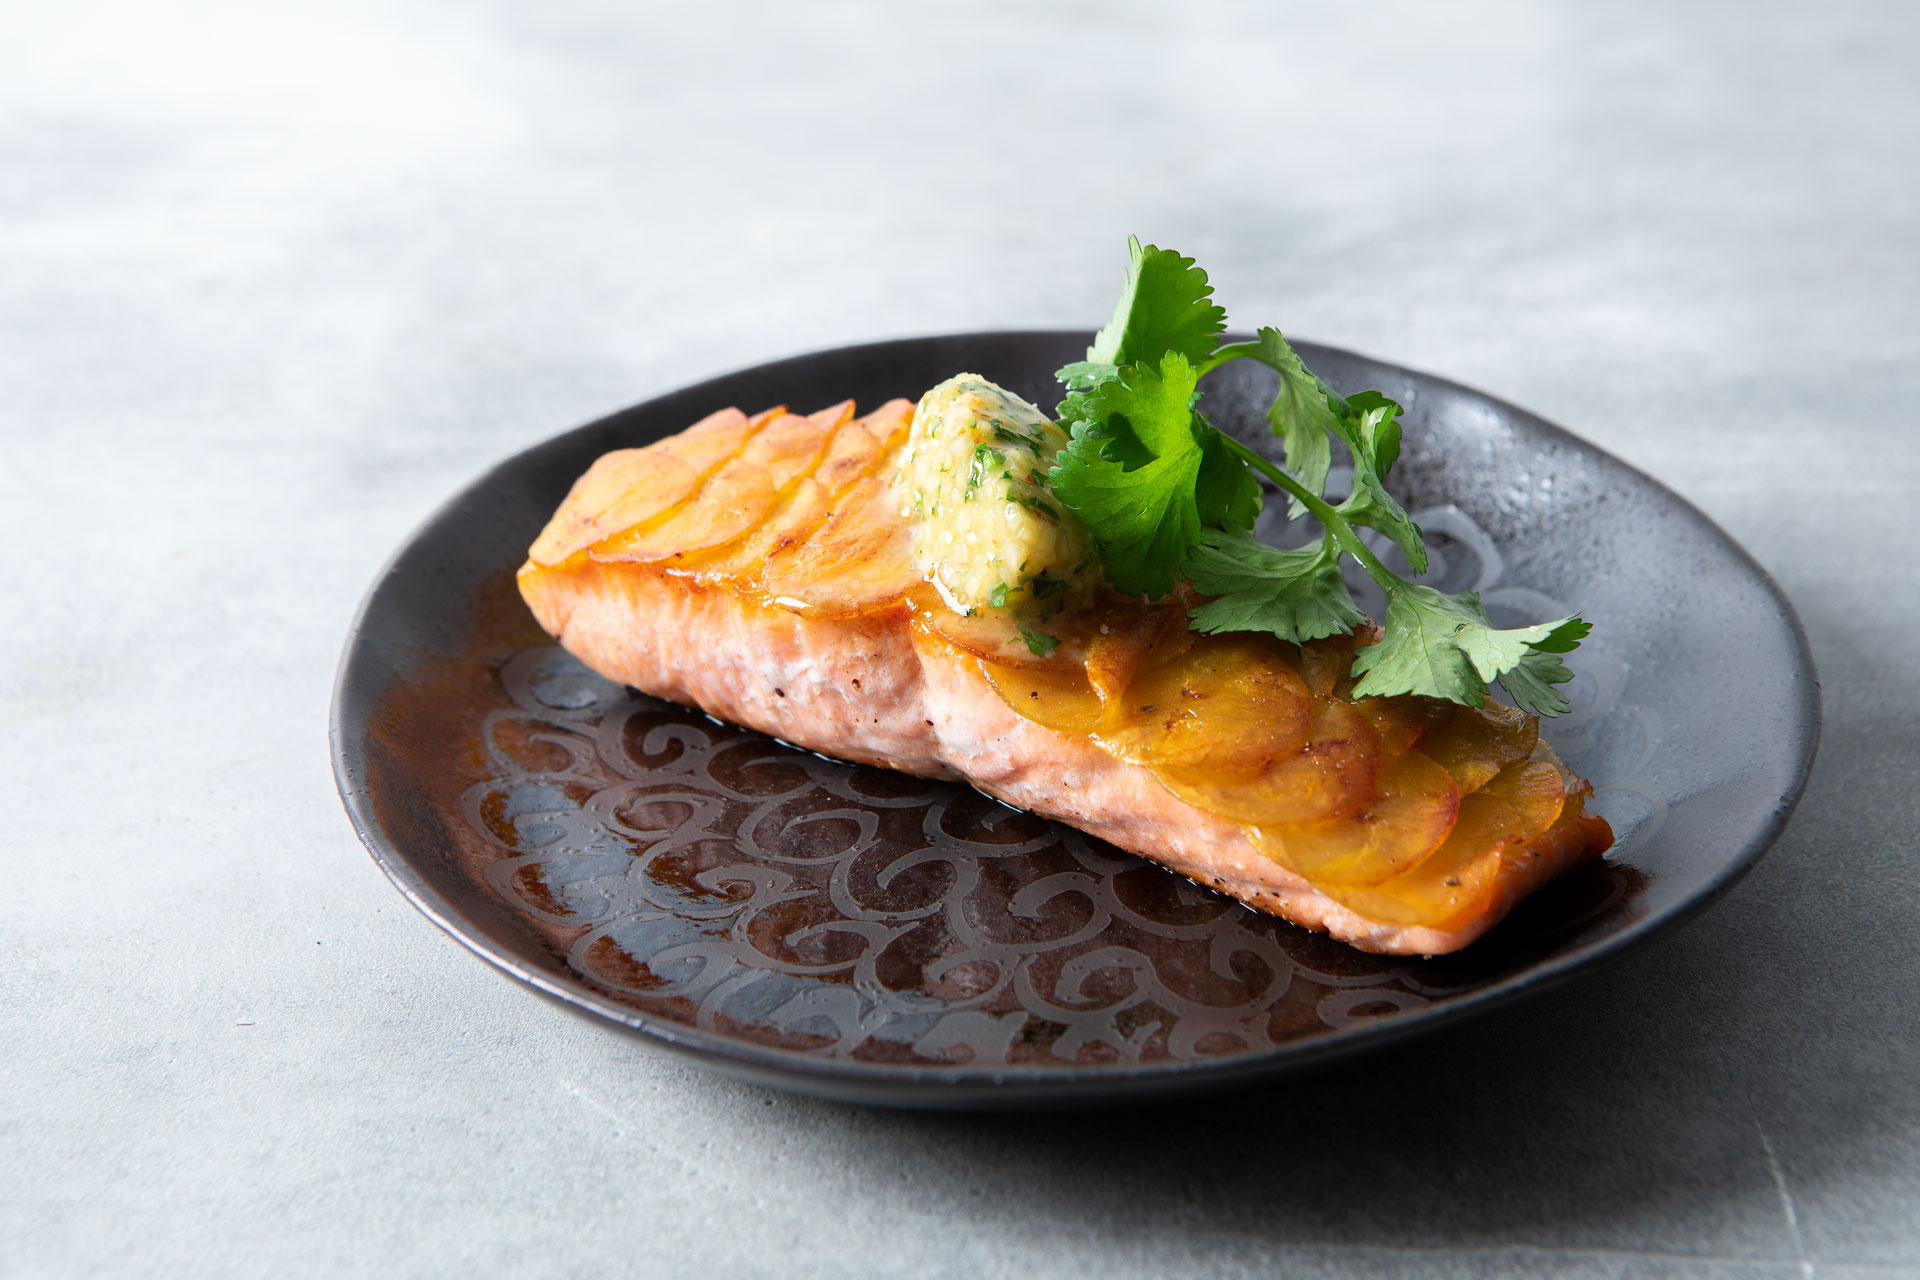 Plantain-Encrusted Salmon with Blood Orange & Mango Butter